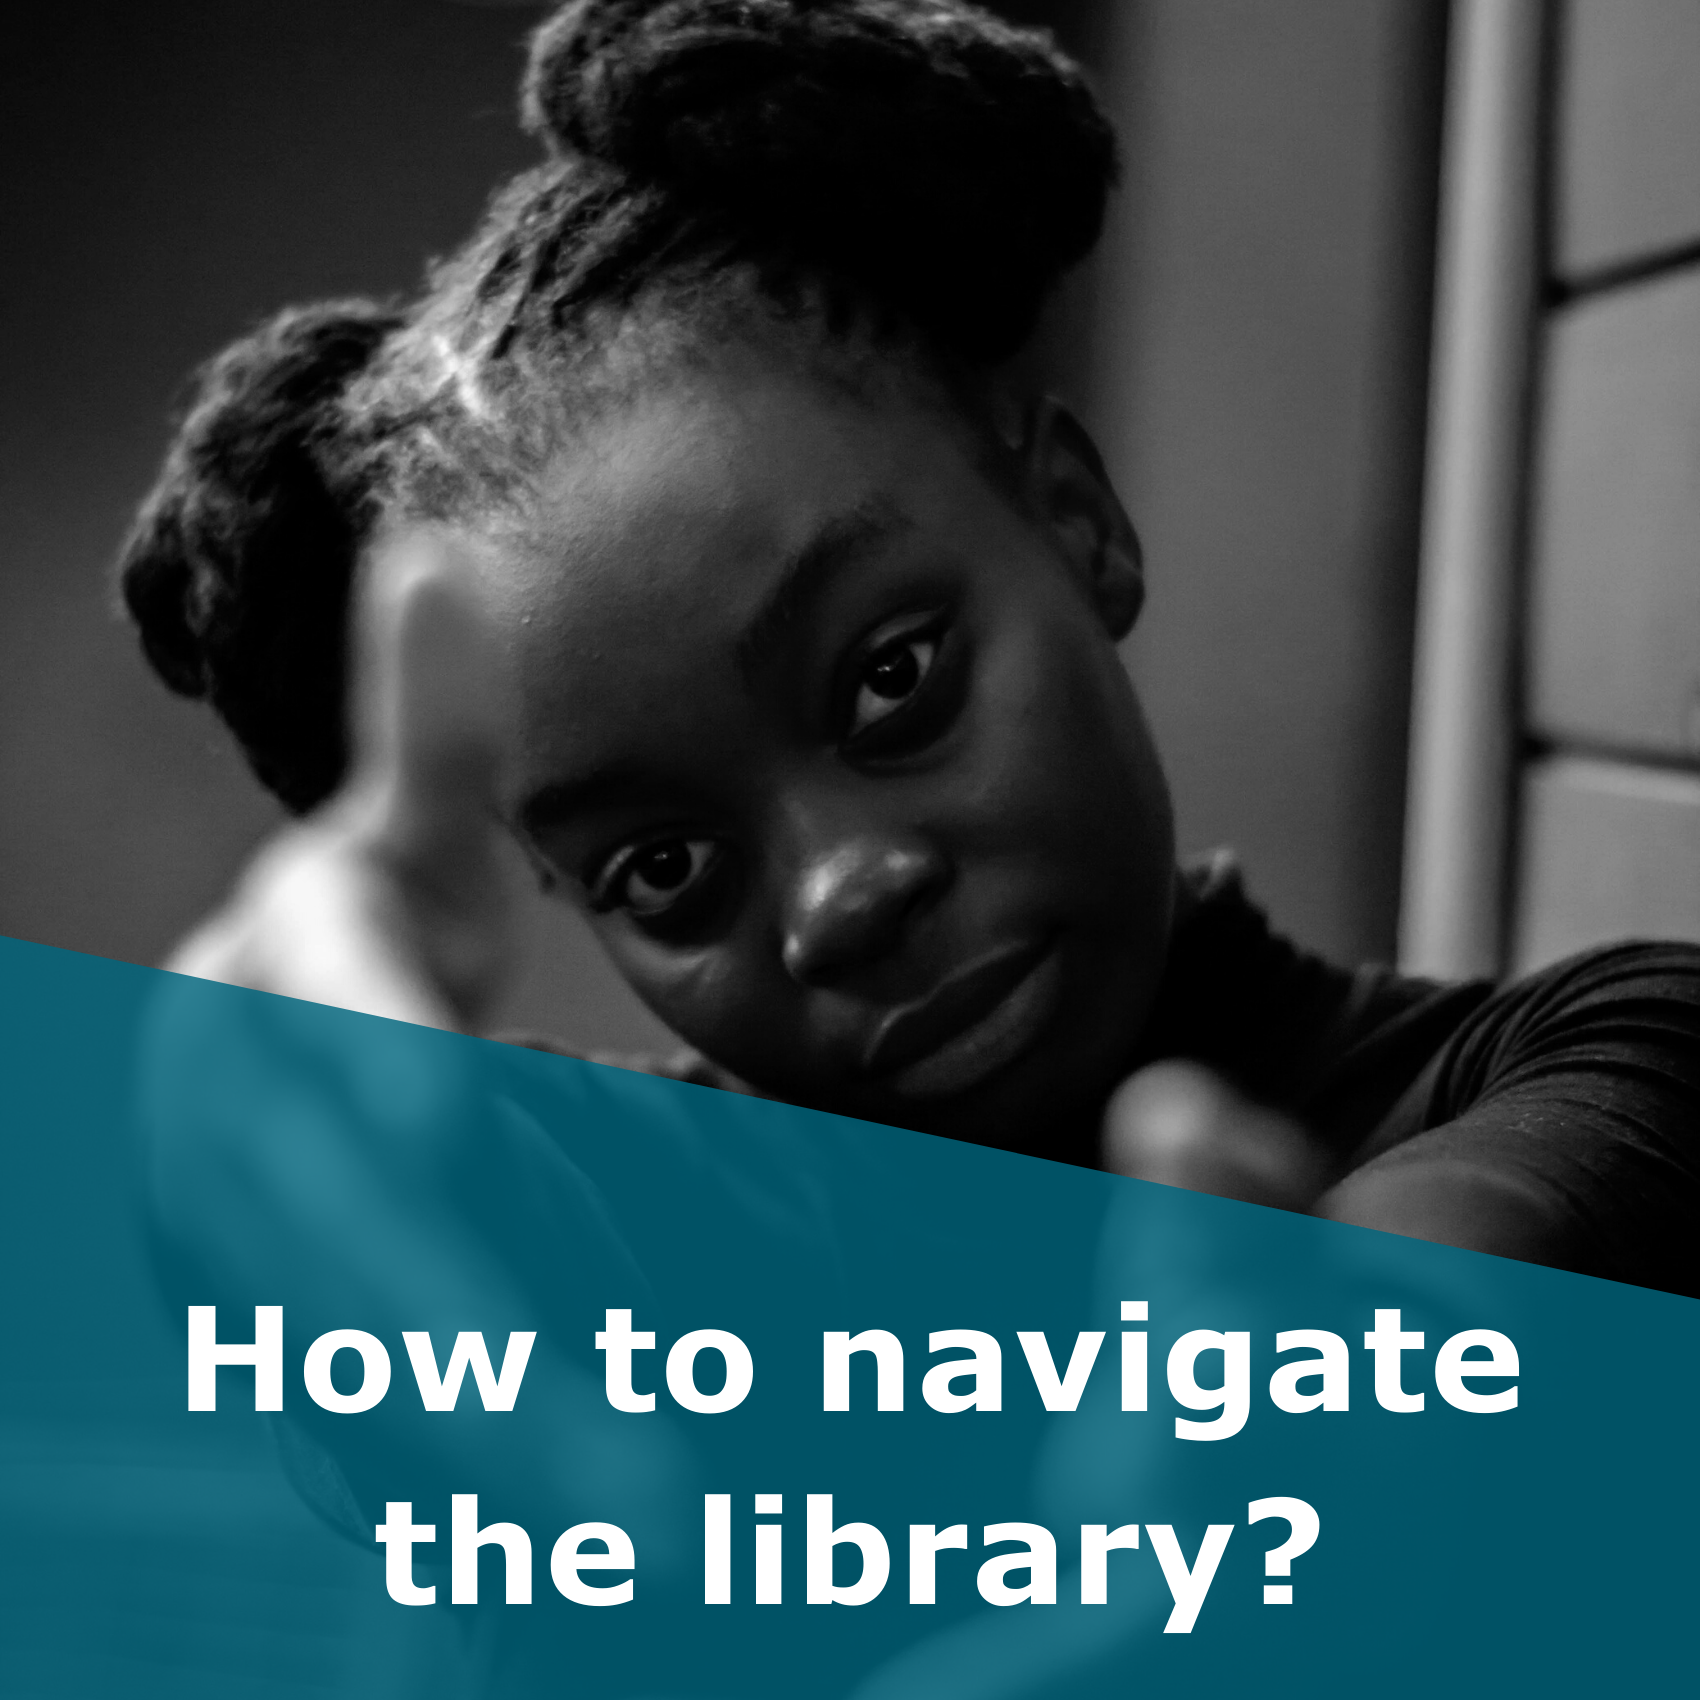 How to navigate the library?